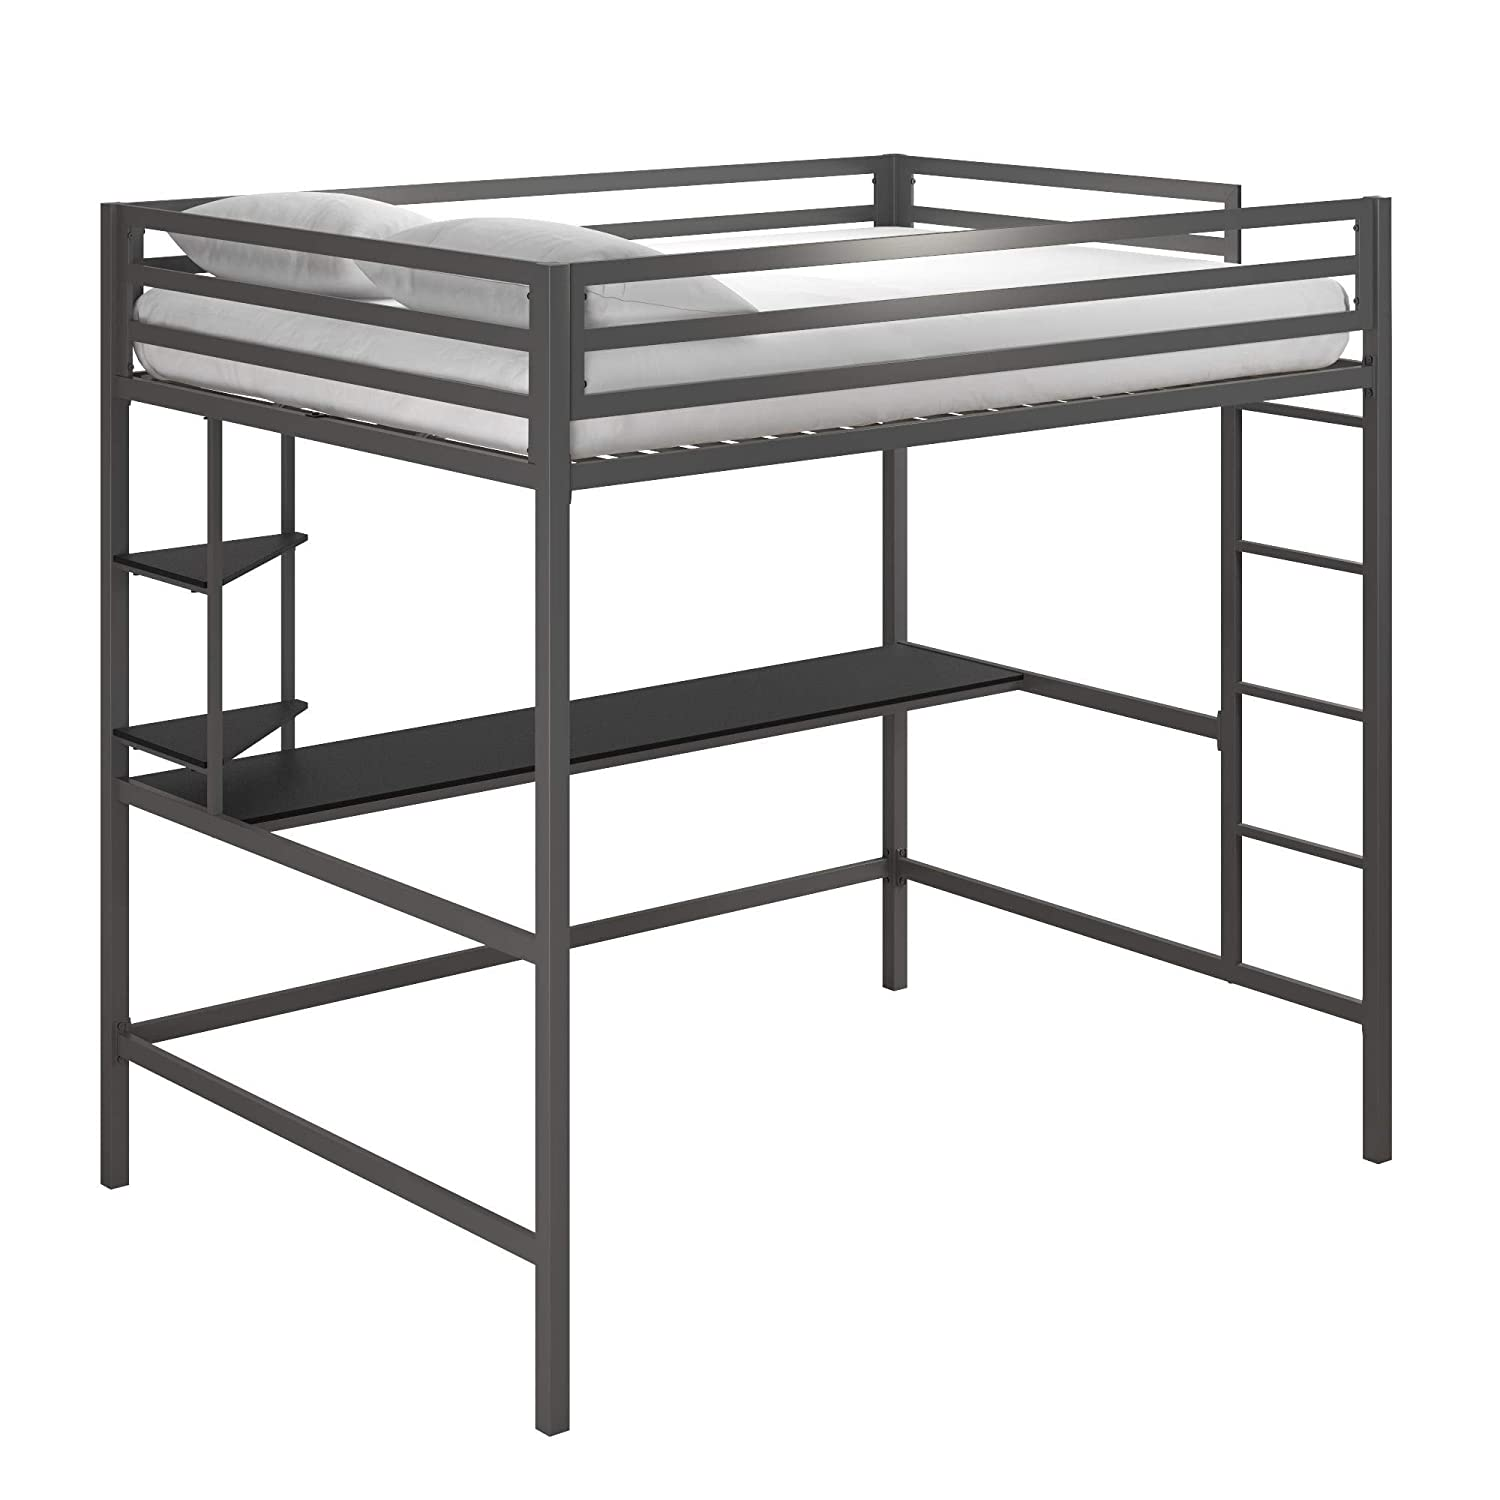 Novogratz Maxwell Metal Full Loft Desk Shelves, Gray Black Bunk Beds,